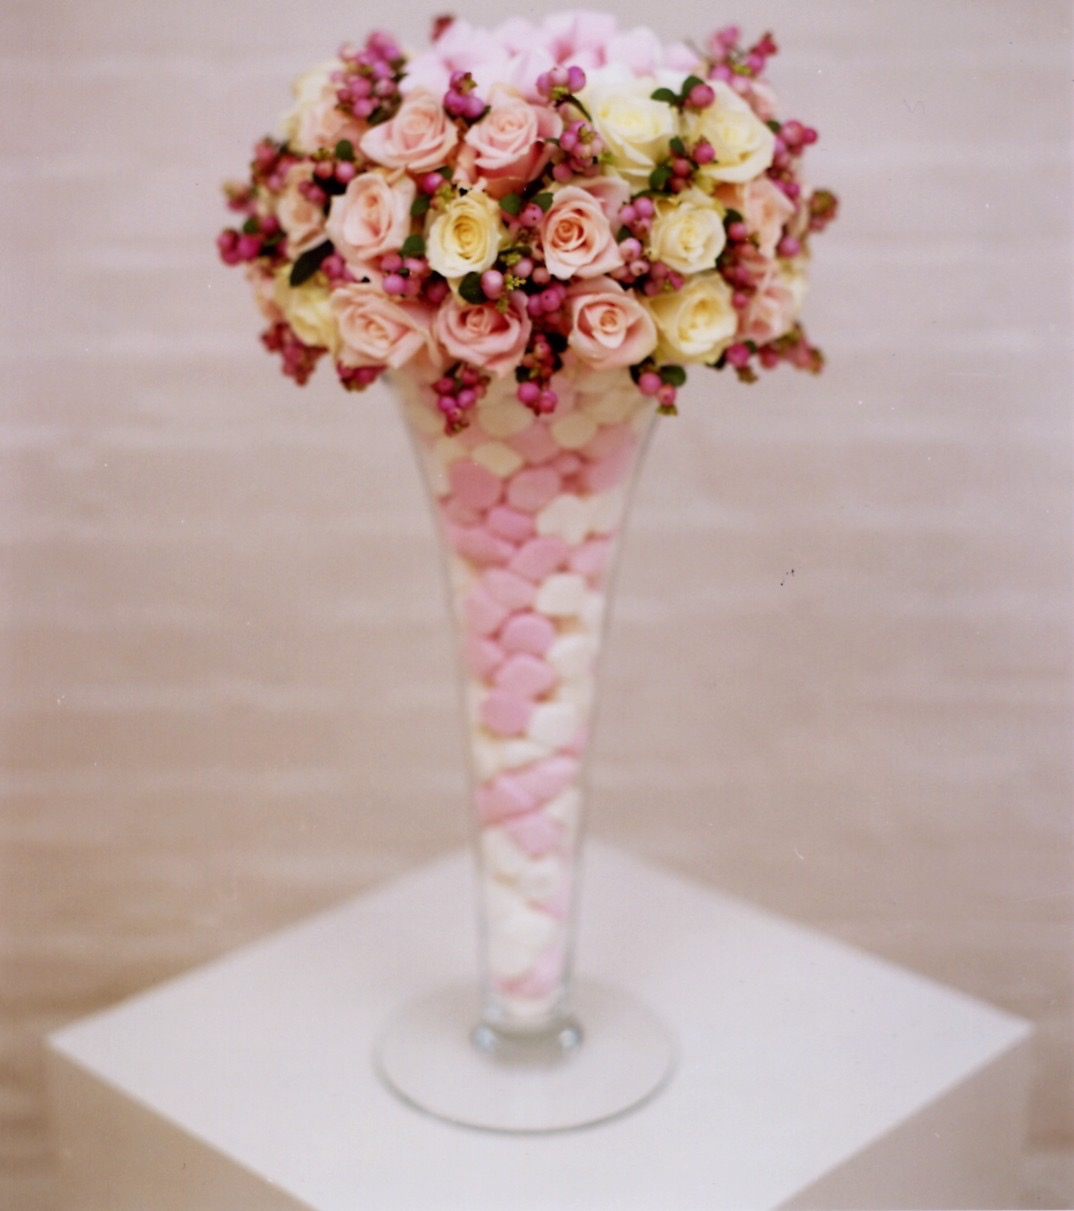 Marshmallows and roses.jpg